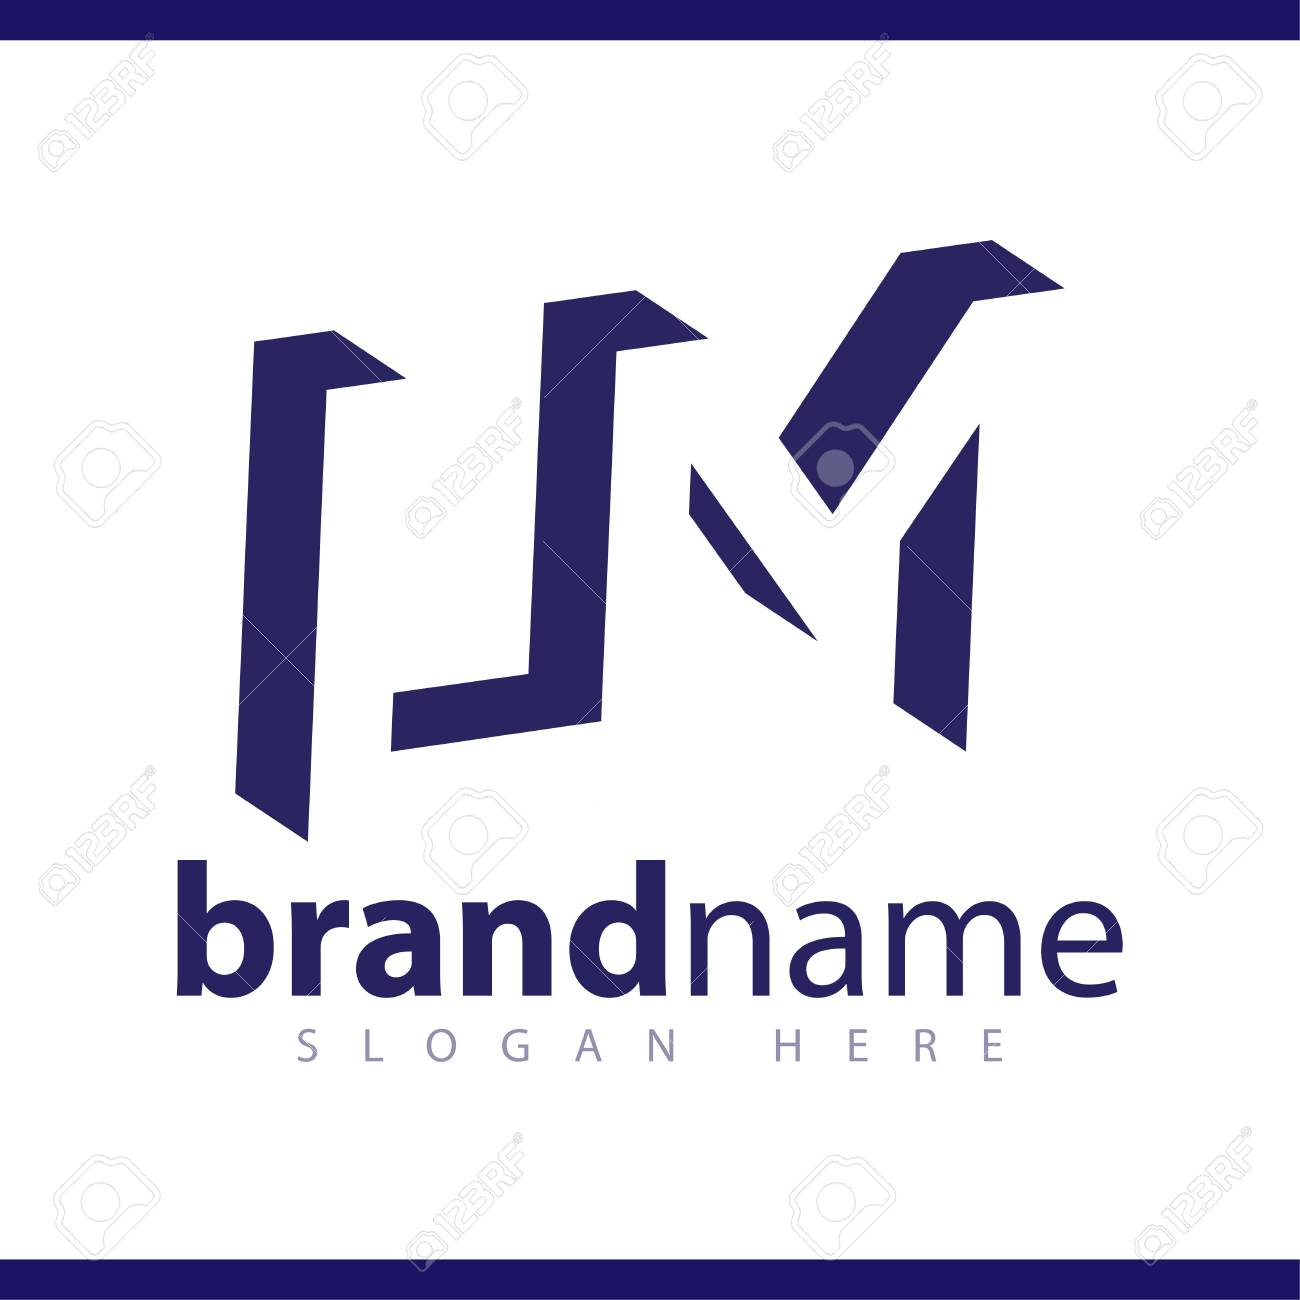 L M initial letter with negative space logo icon vector template - 113966506